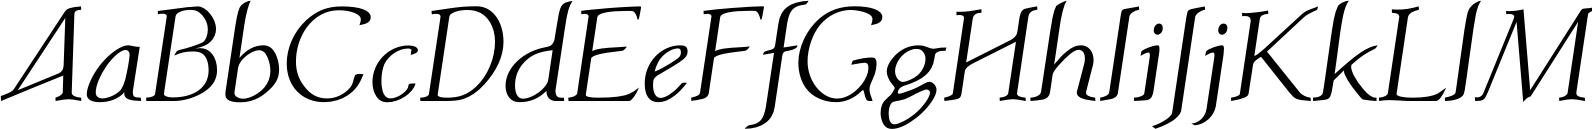 Atlantic Serif Regular Italic